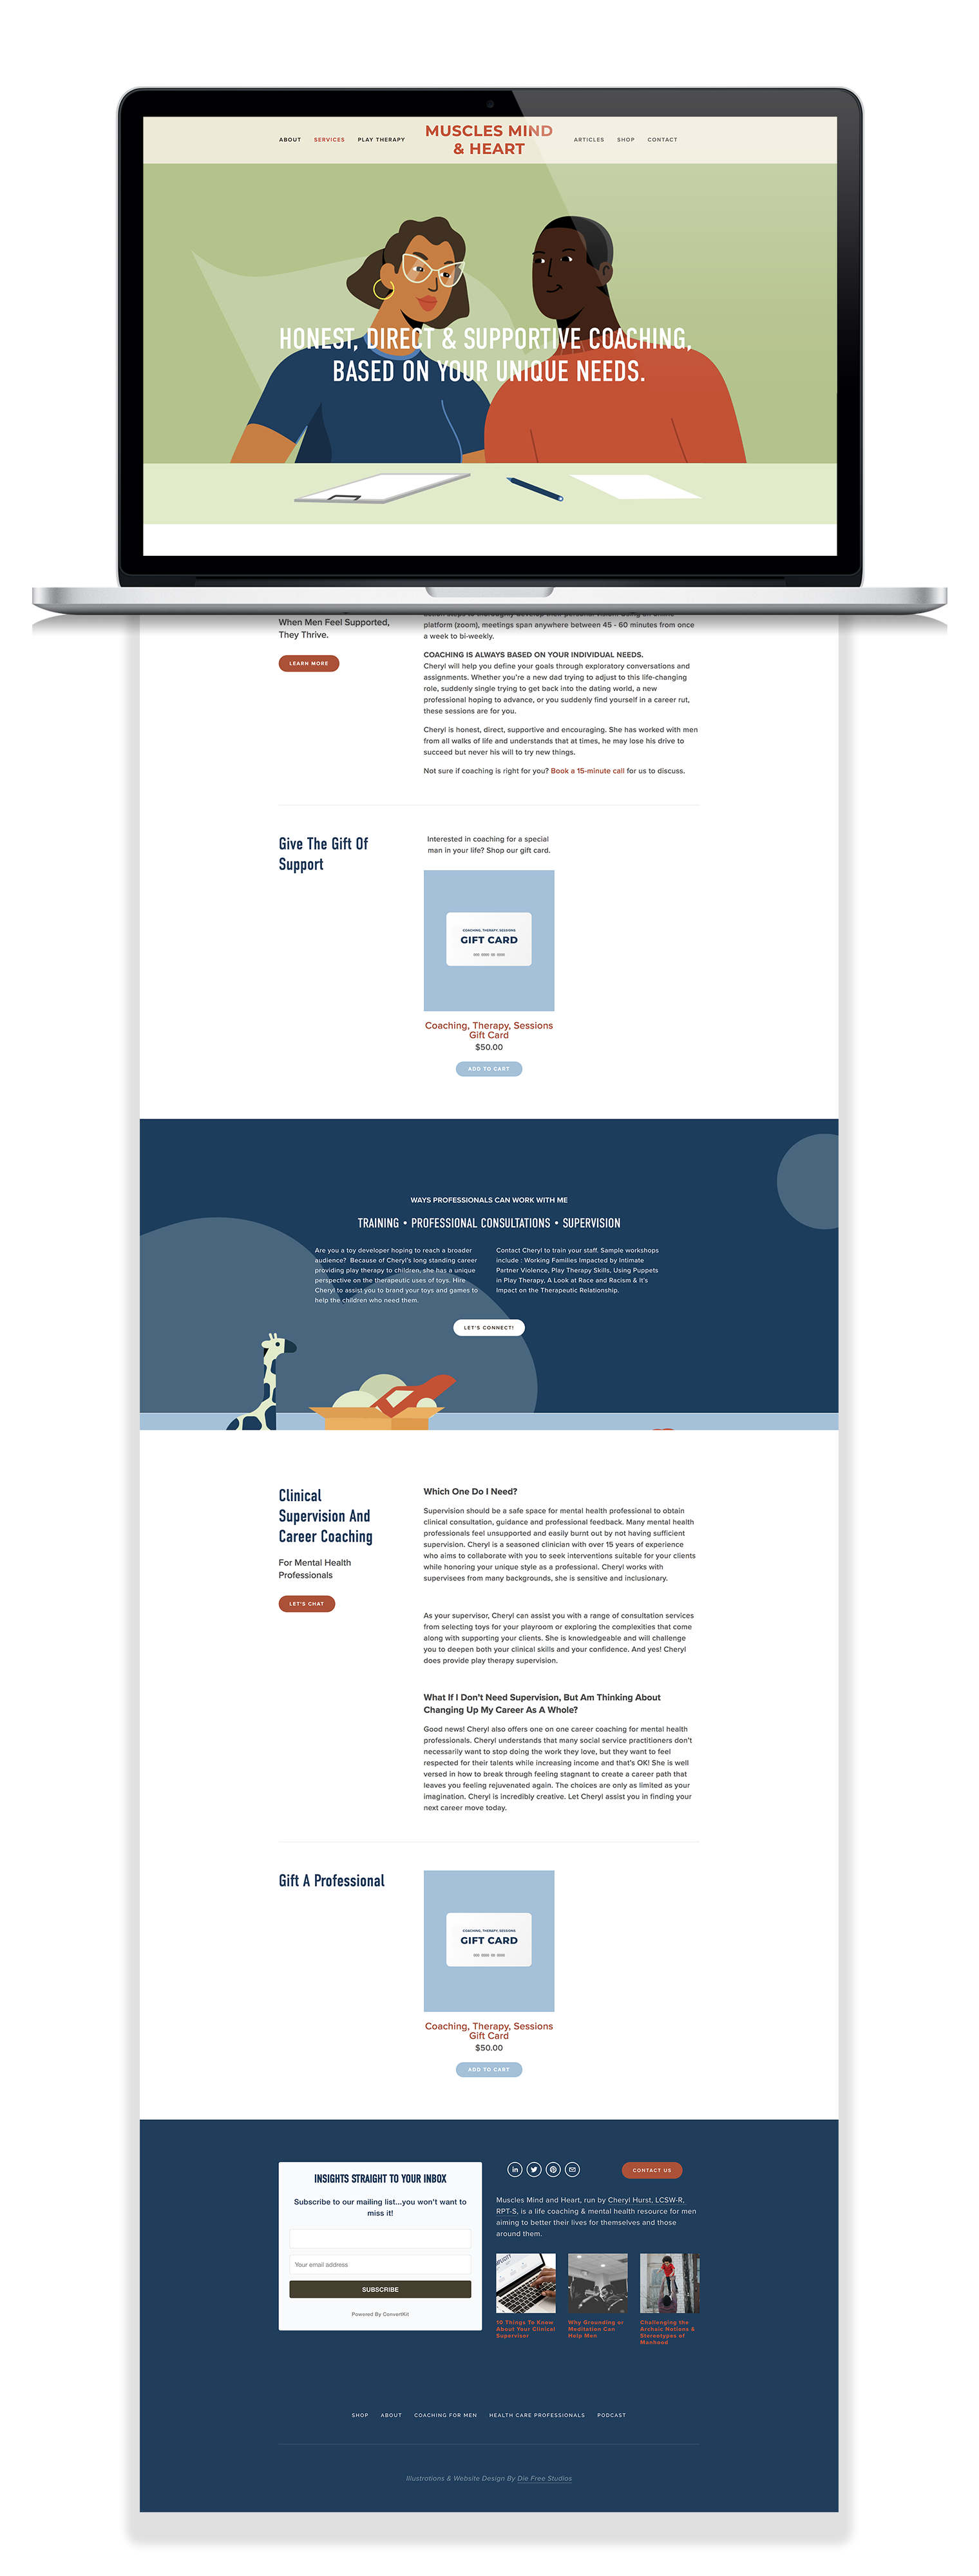 muscles-mind-heart-website-design-services-page-laptop.png